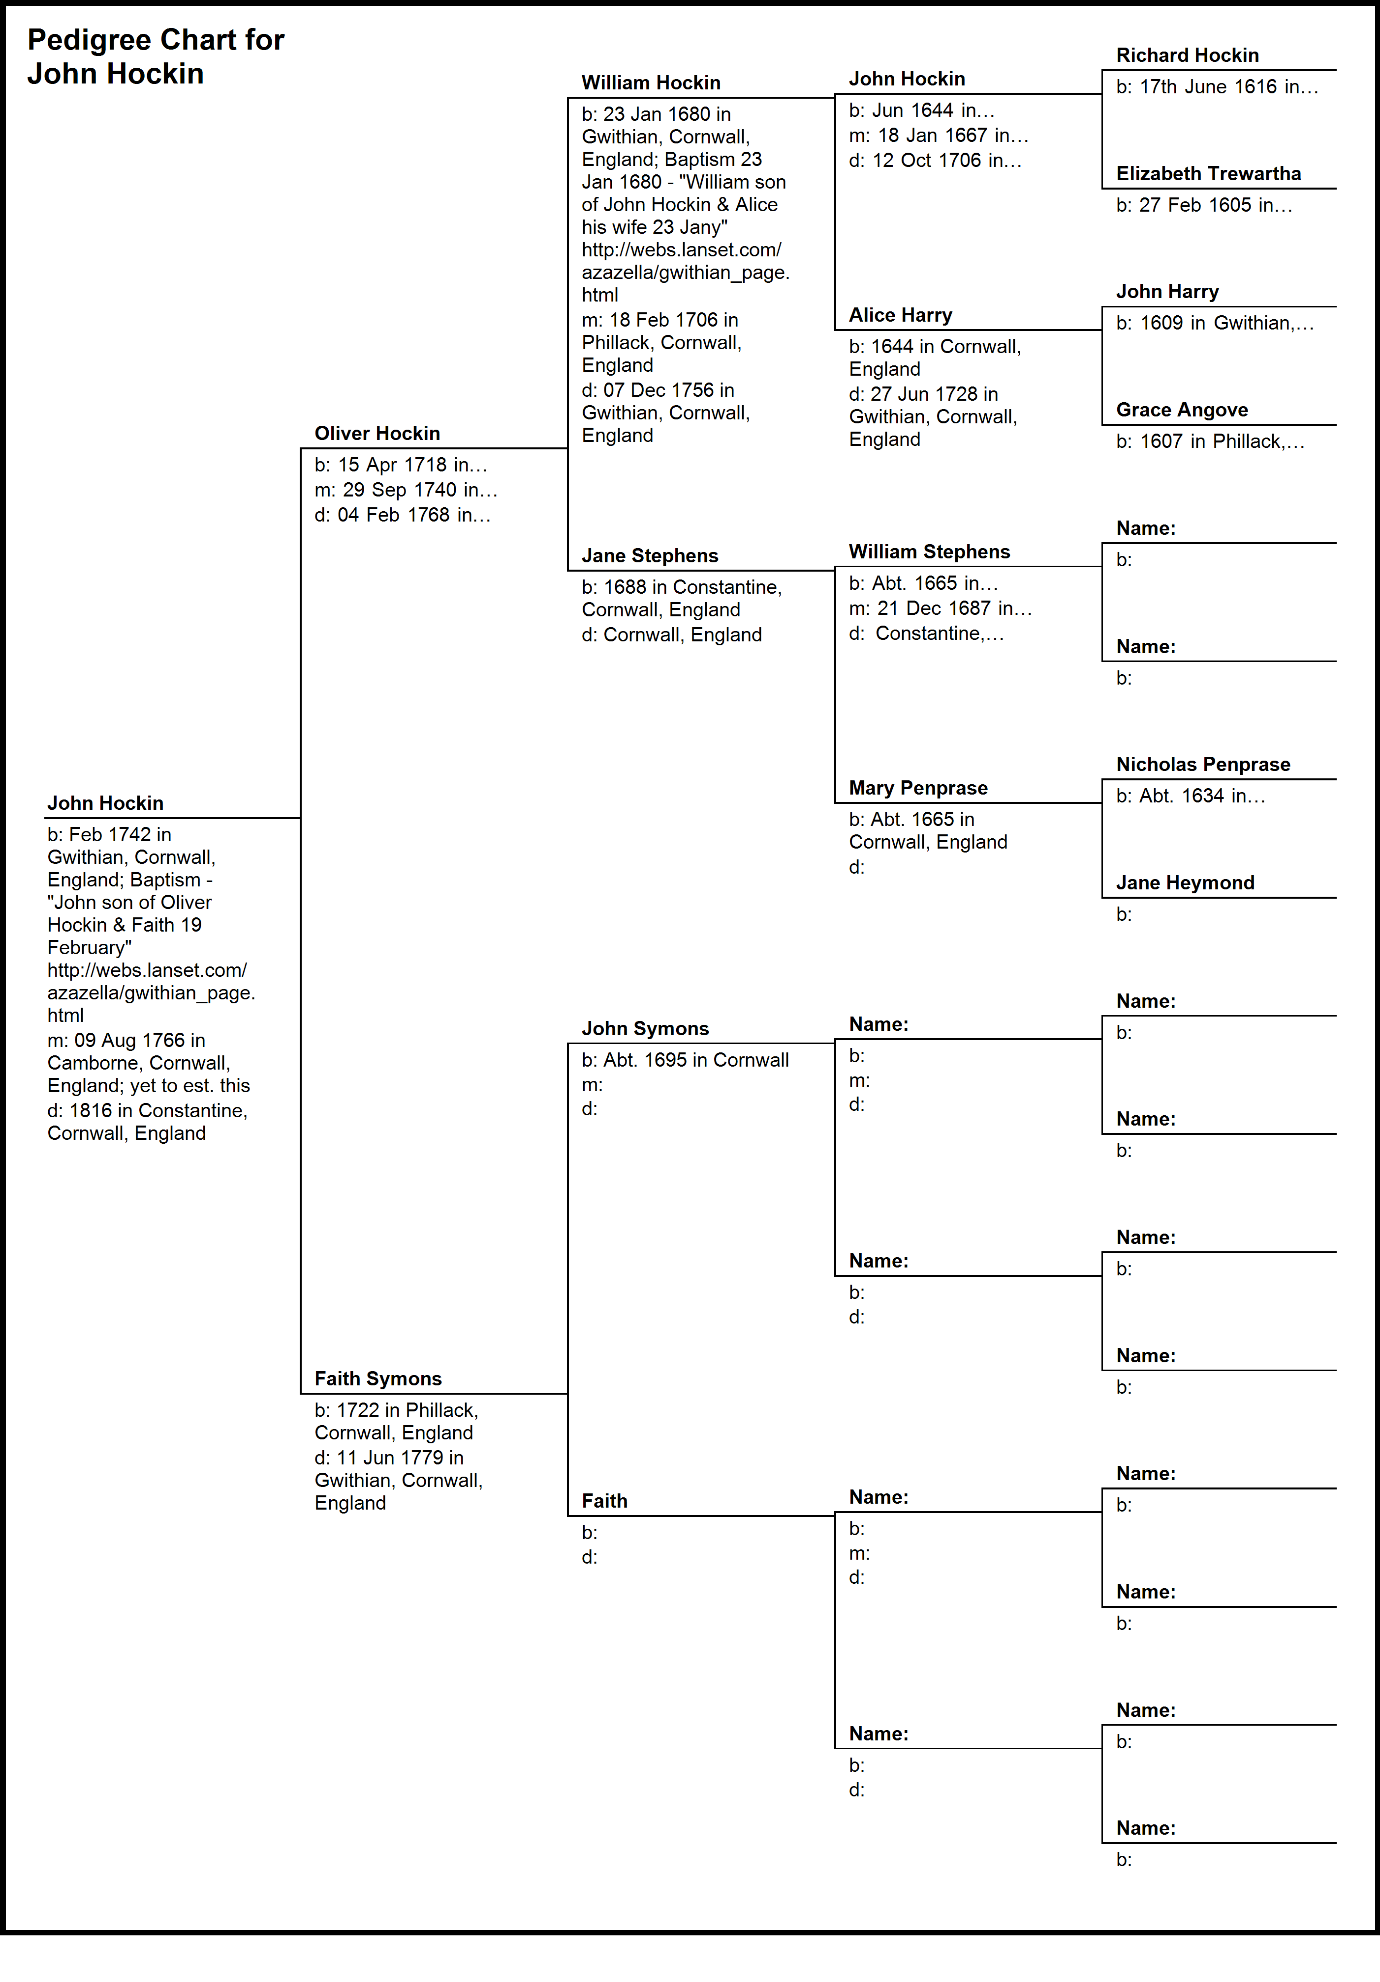 C:\Users\Virginia Rundle\Dropbox\VR\Ancestry Stuff\Fuller\Hockin\Pedigree Chart for John Hockin 2.bmp